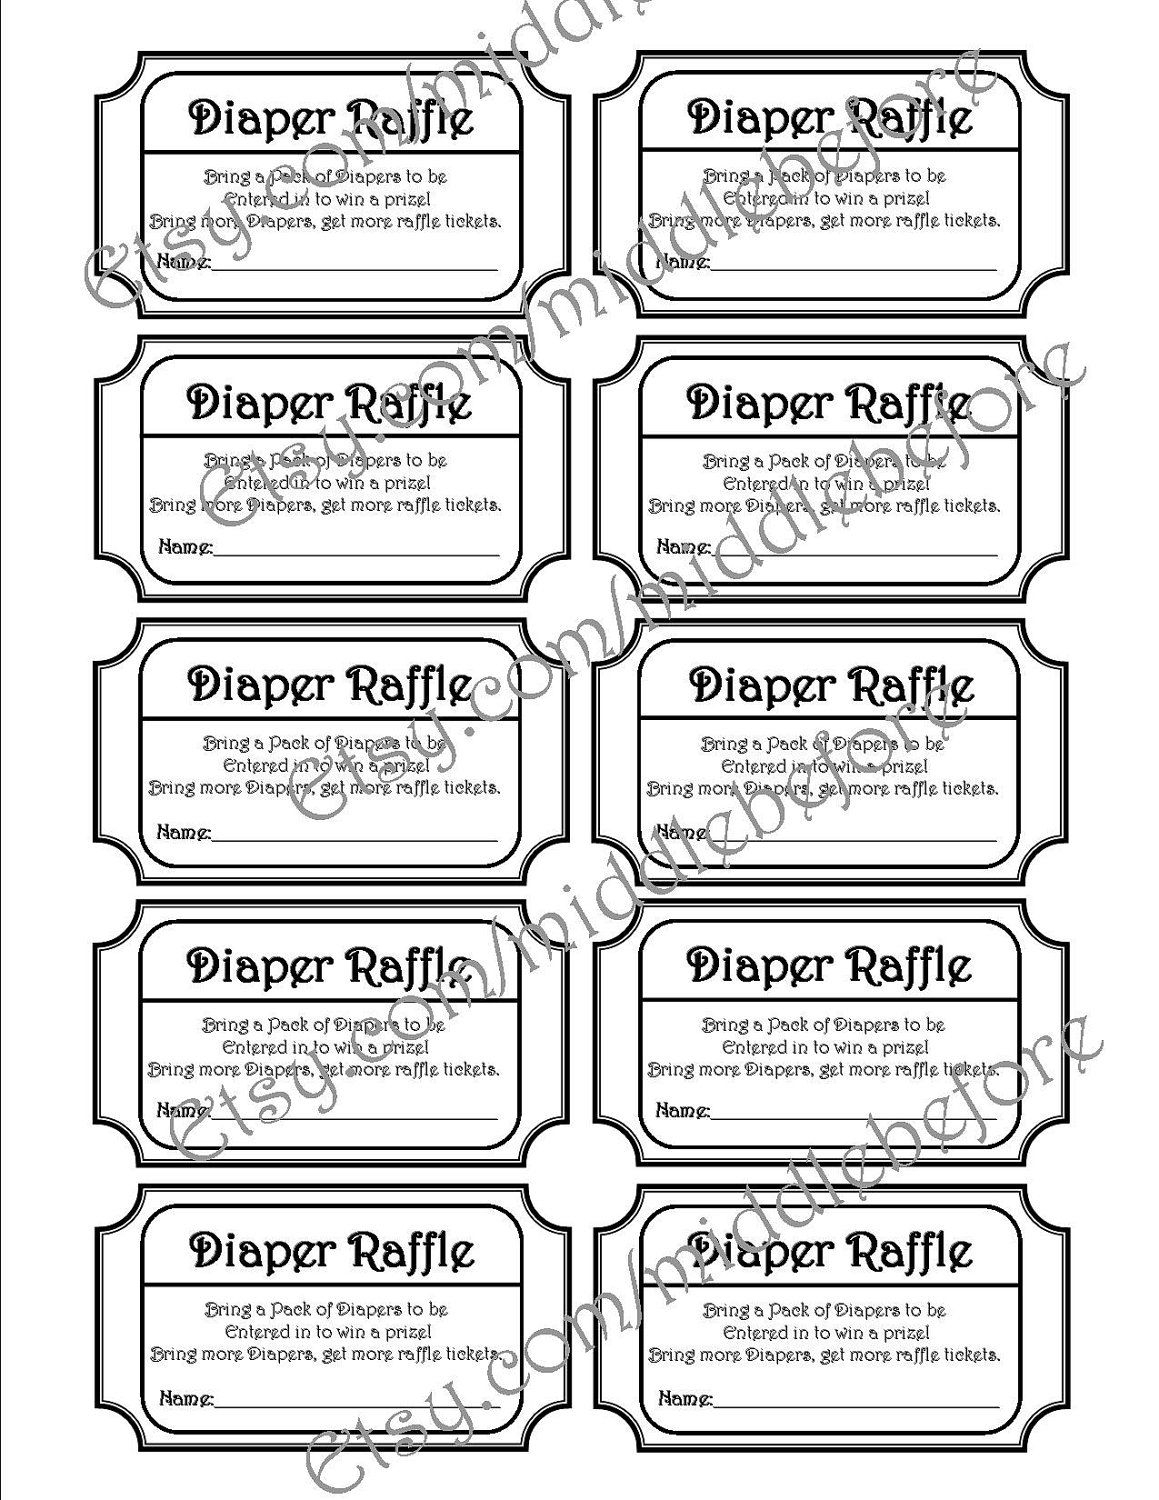 Black & White Printable Baby Shower Diaper Raffle Ticket. Via Etsy - Free Printable Diaper Raffle Tickets Black And White